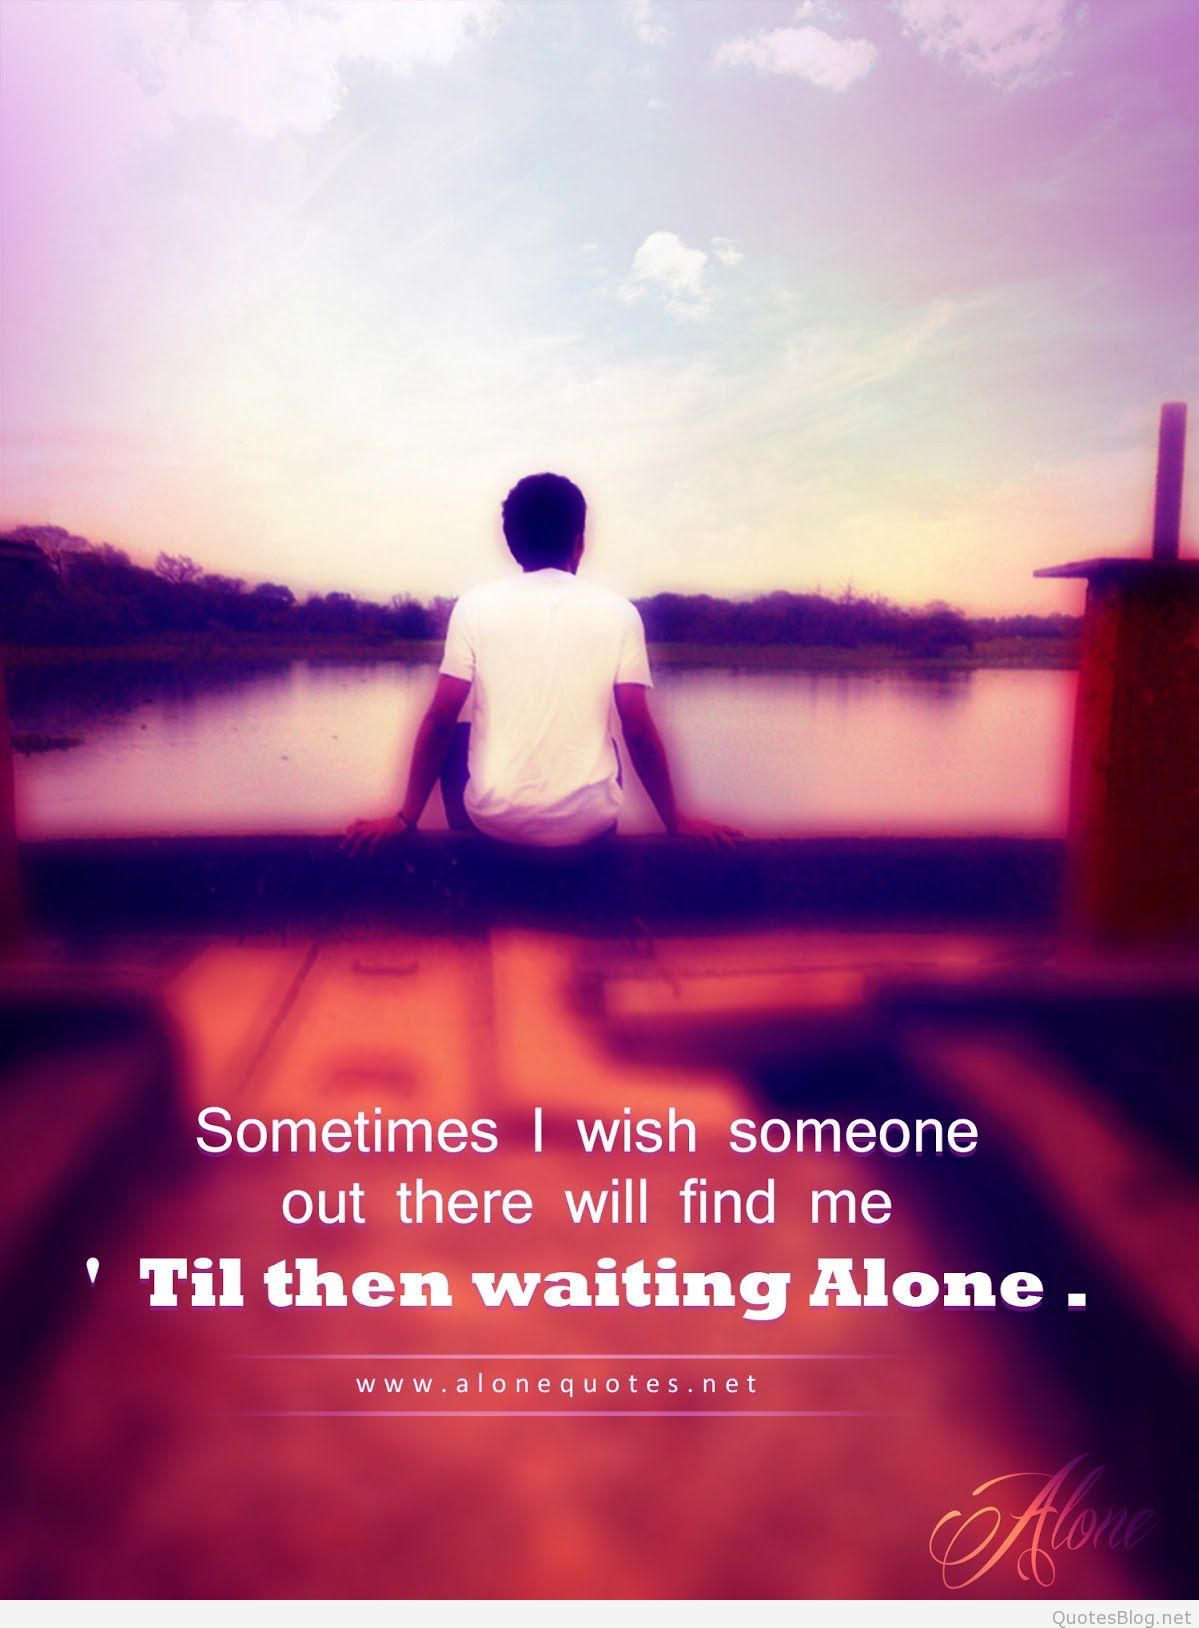 sad-love-quotes-for-boys-sad-alone-boy-love-quotes-wallpaper-download-sad-alone-boy-love-cool ...